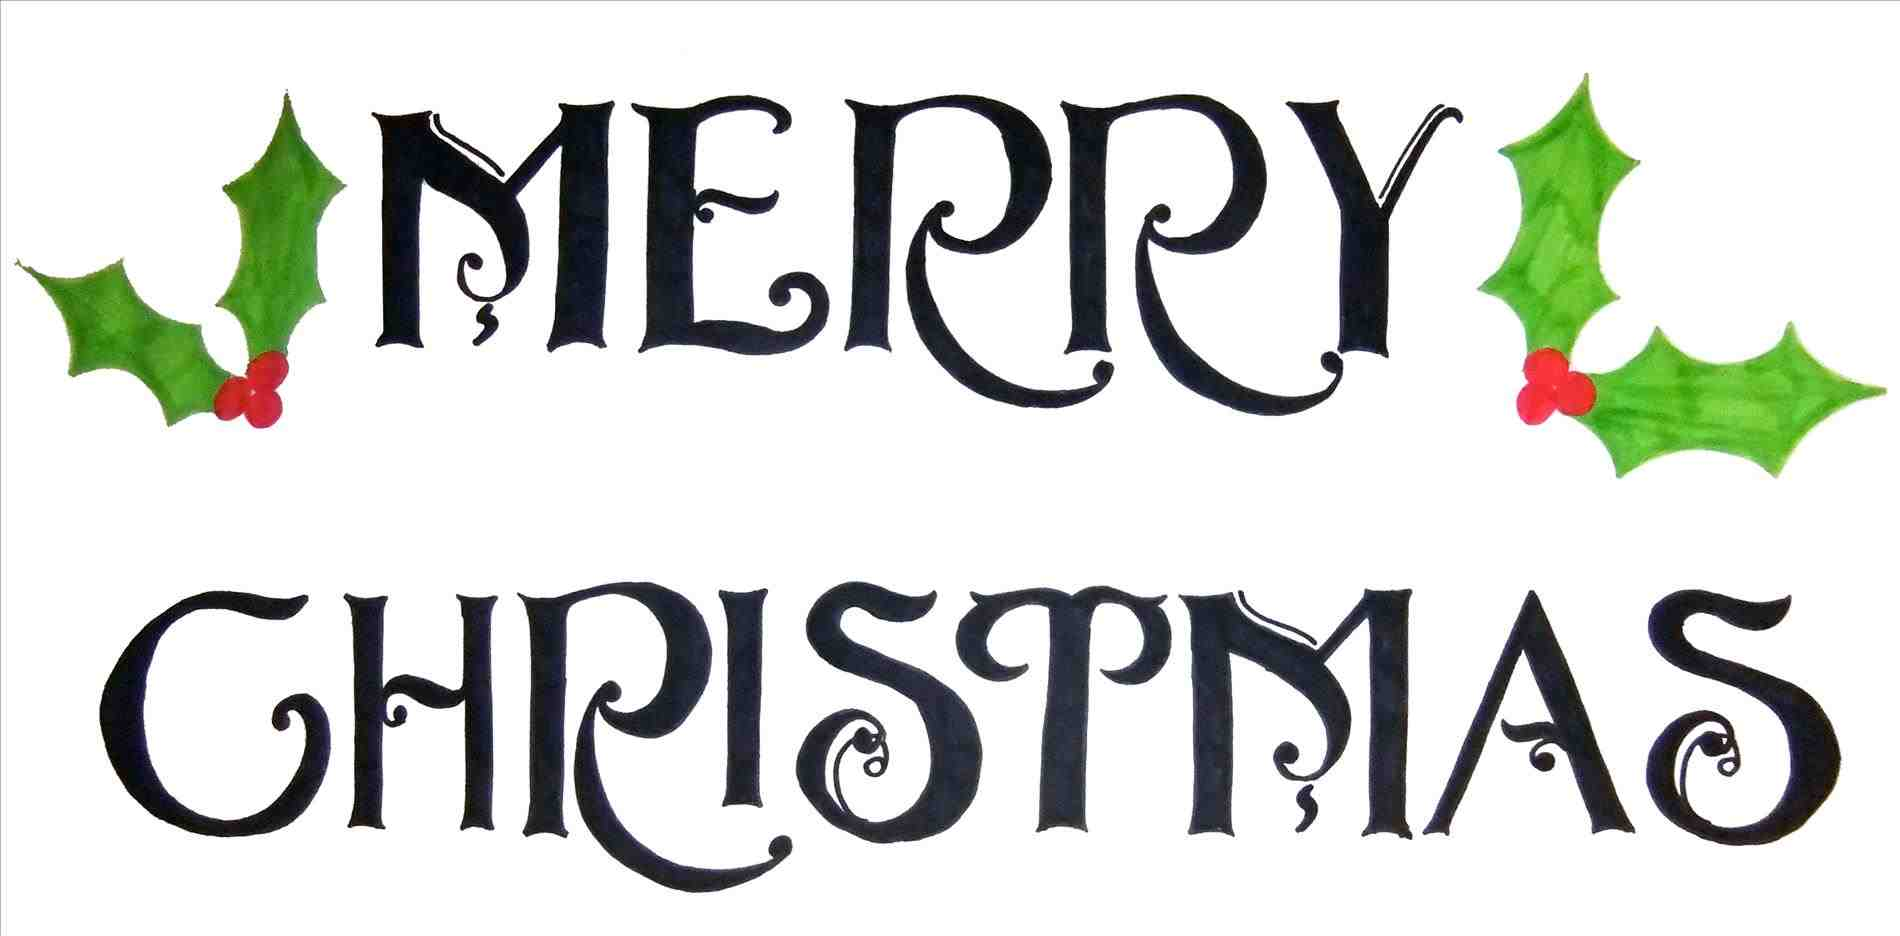 1900x936 Merry Christmas And Happy New Year Clip Art Cheminee.website